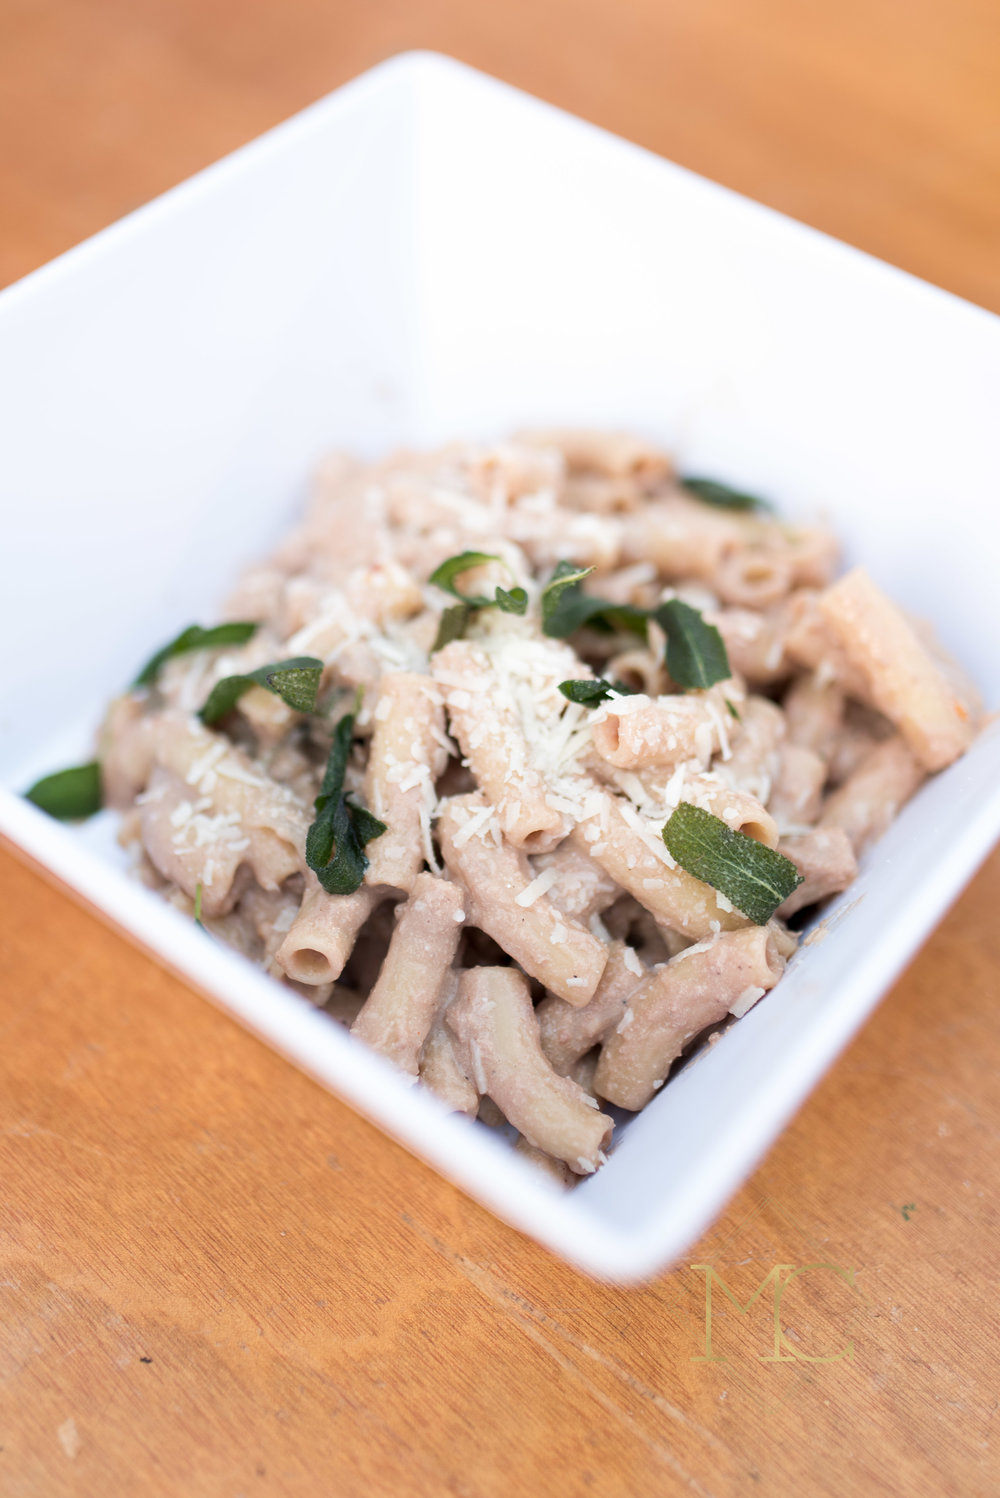 image from multiple sclerosis nashville event of liver pate pasta by chef travis mcshane from adele's nashville